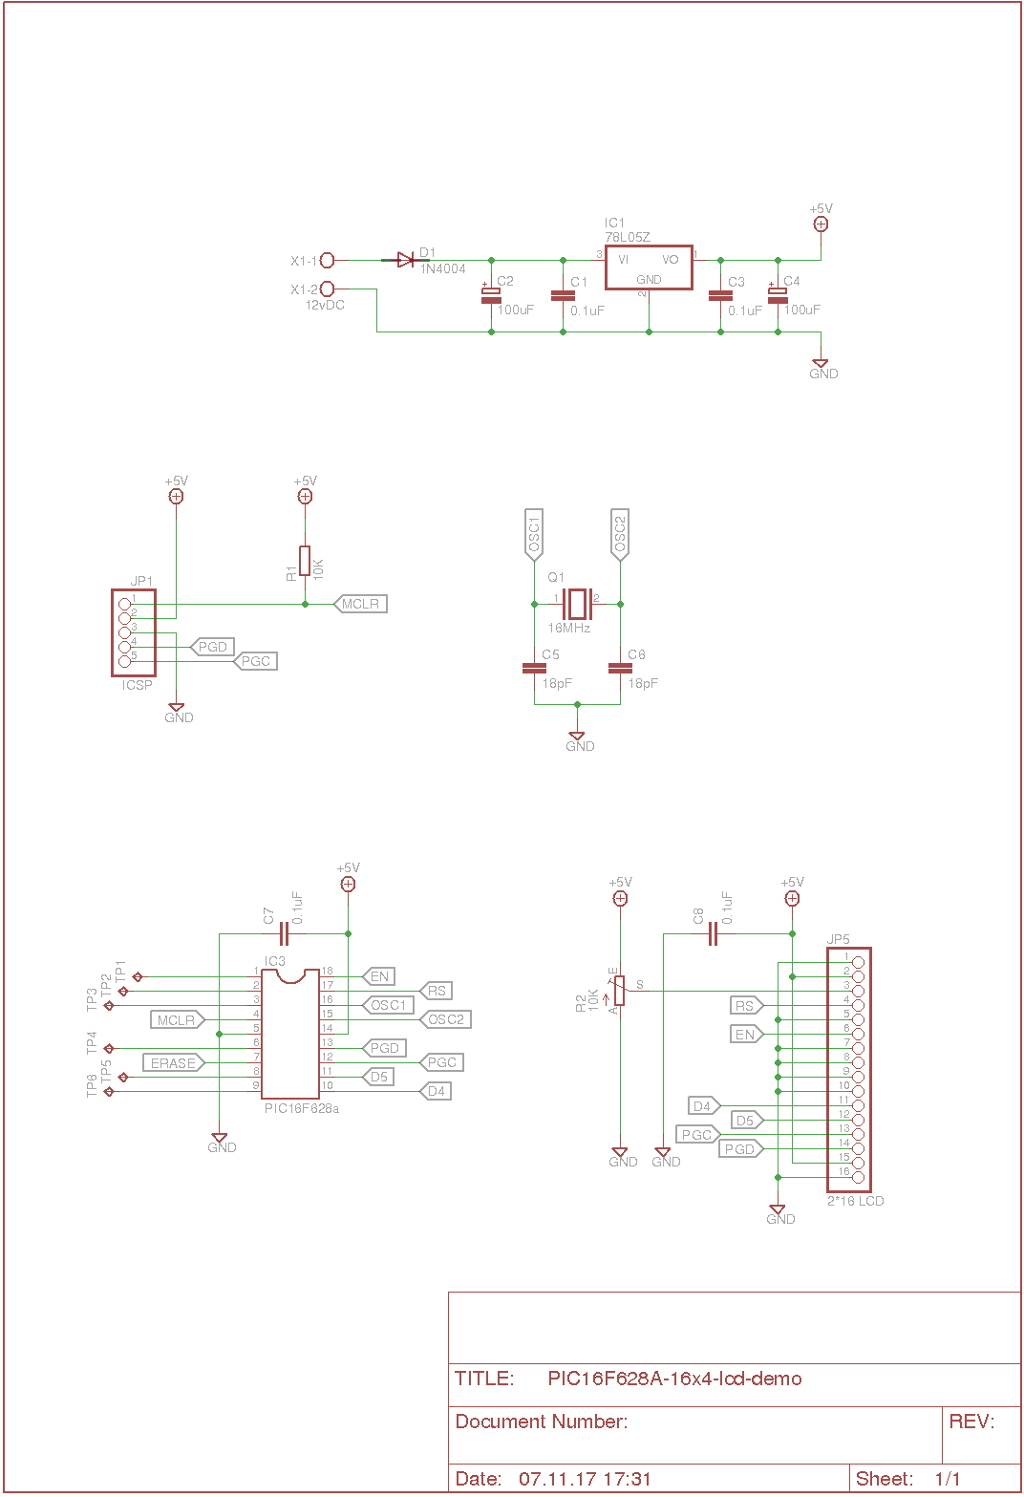 Schematic layout